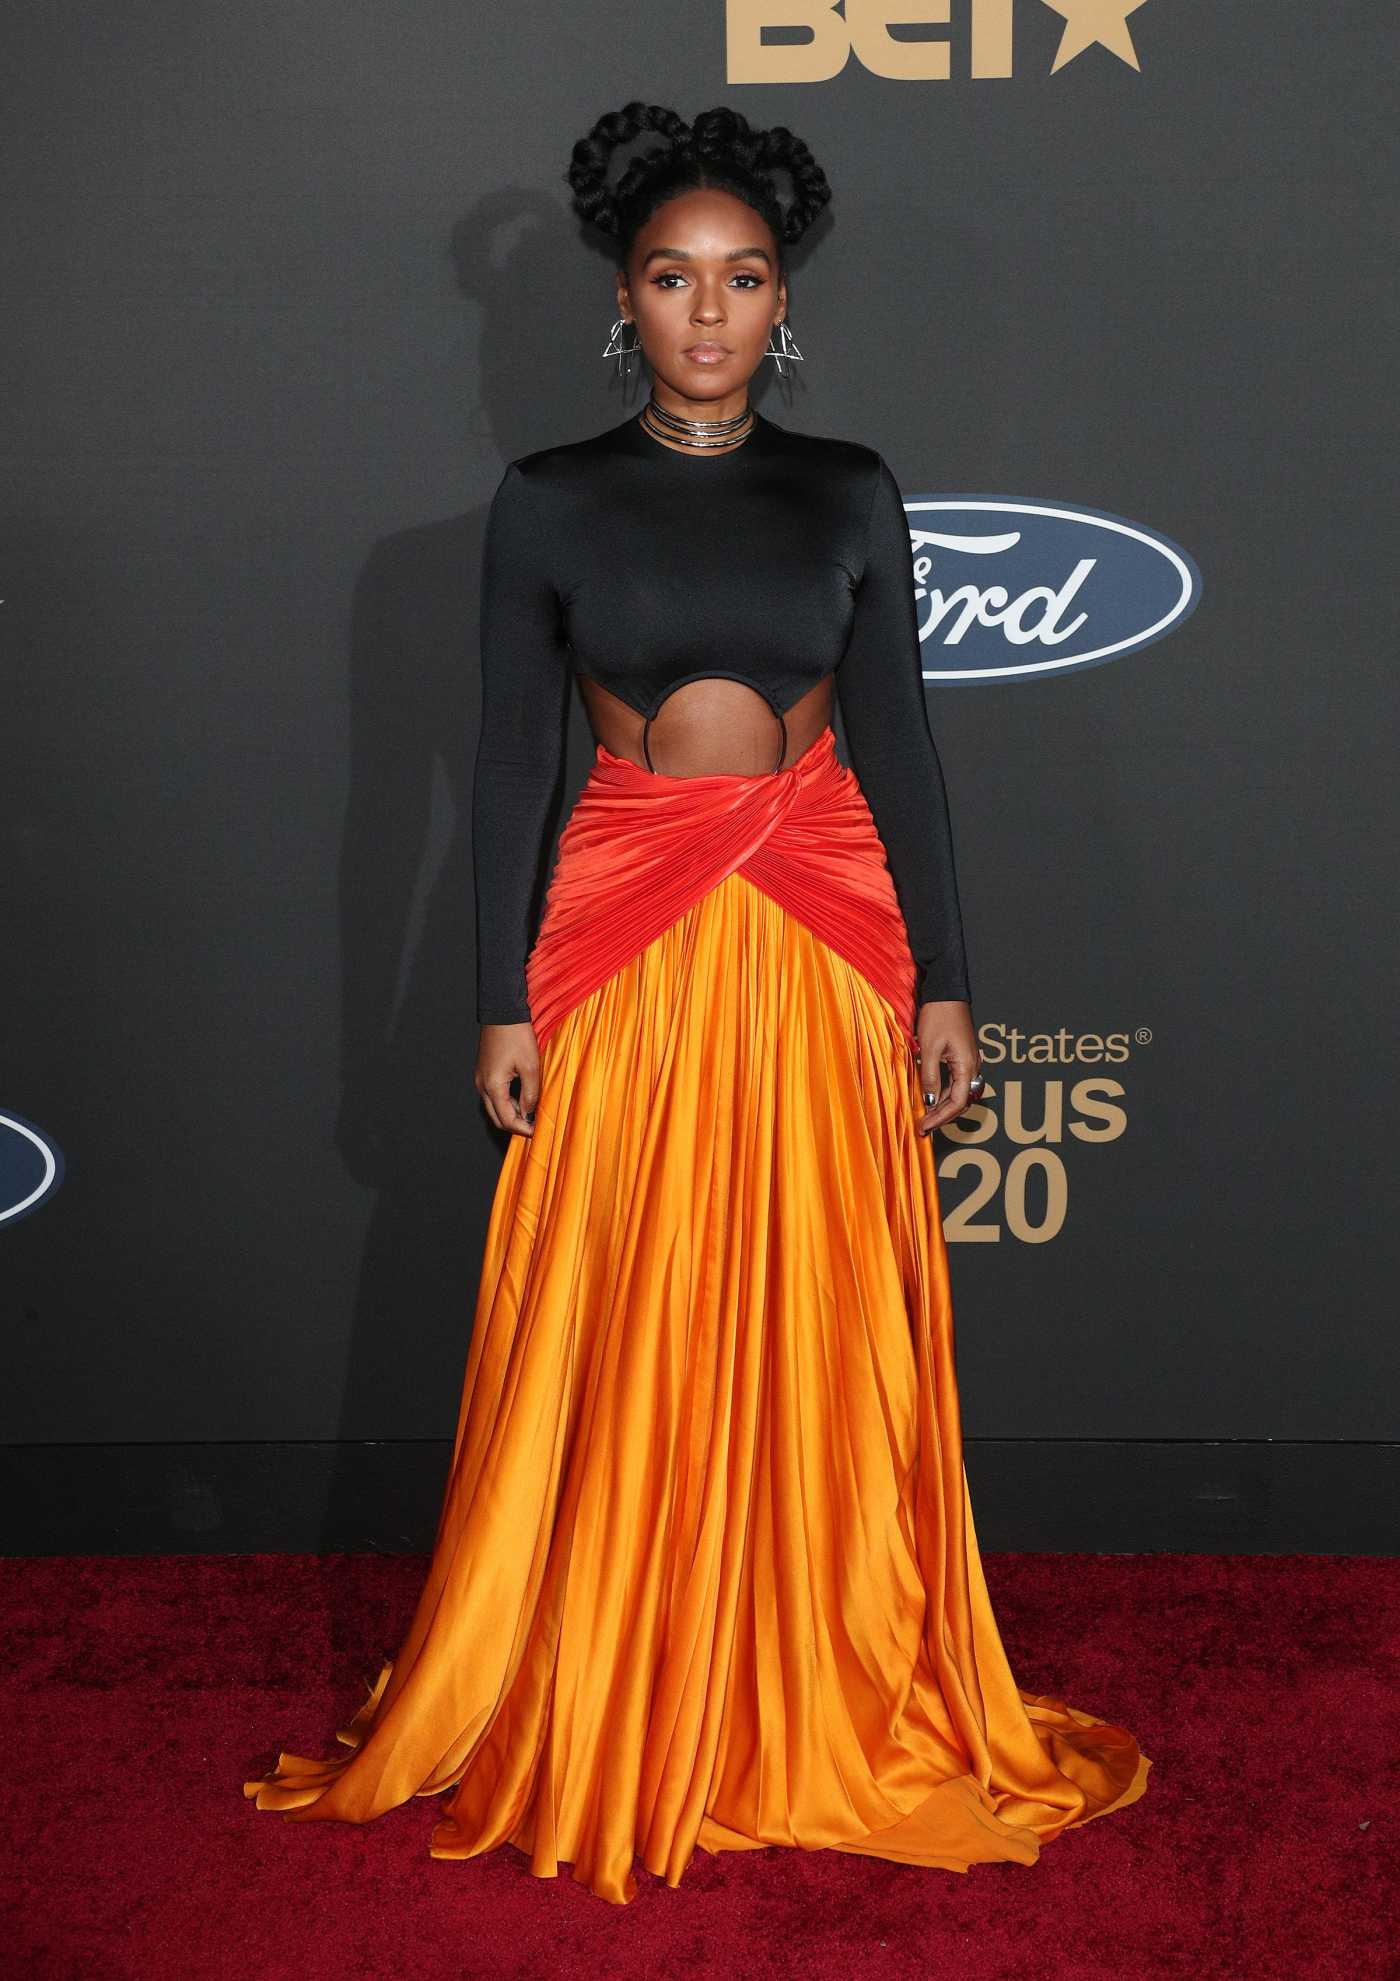 Janelle Monae Attends the 51st NAACP Image Awards at Pasadena Civic Auditorium in Pasadena 02/22/2020